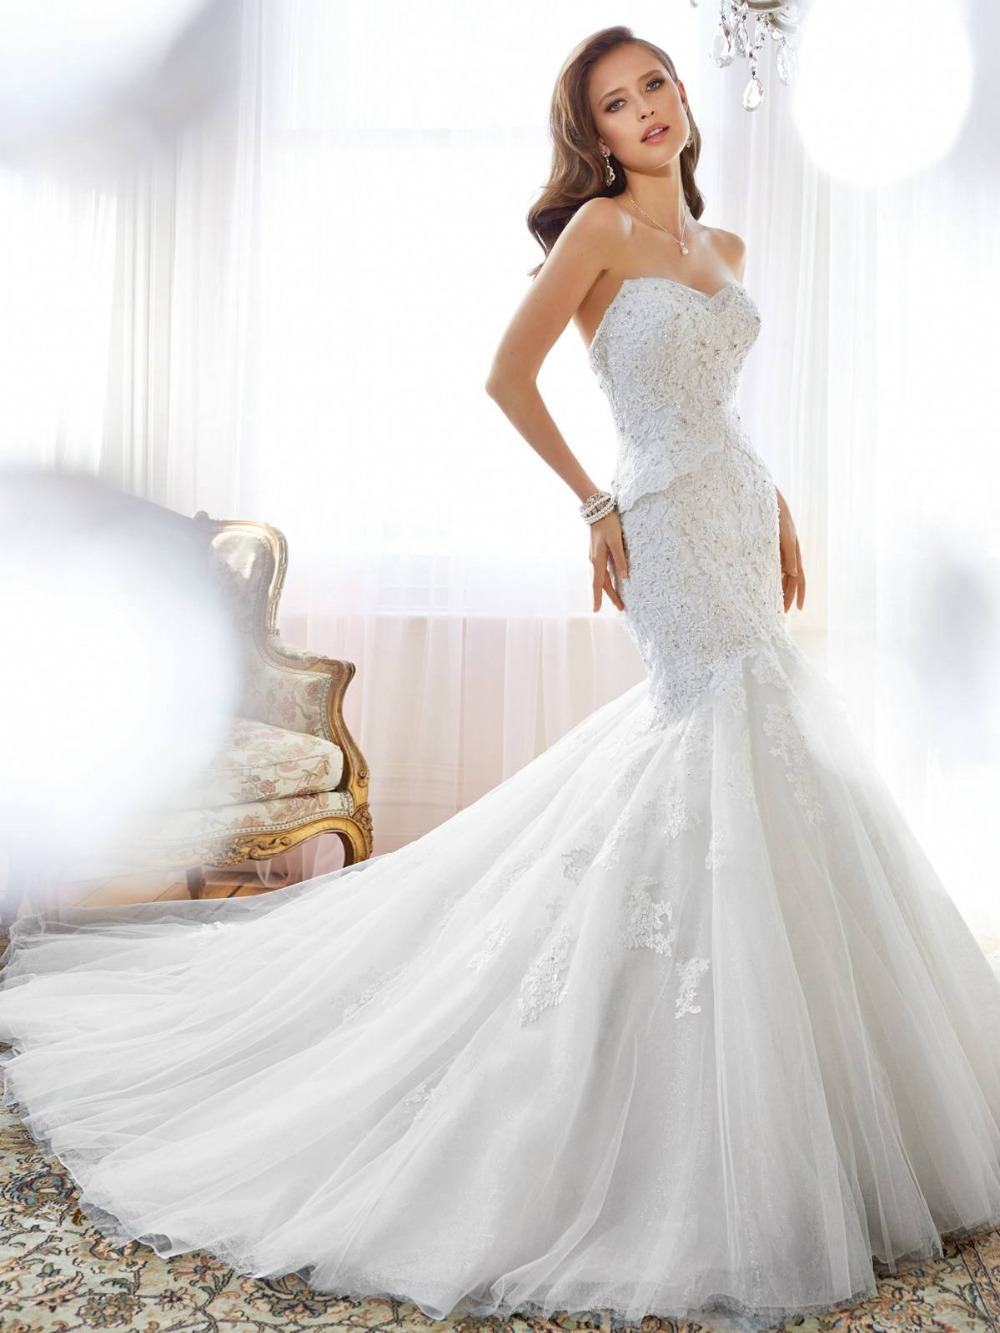 Luxury Wedding Dress Mermaid 2015 Sweetheart Neckline